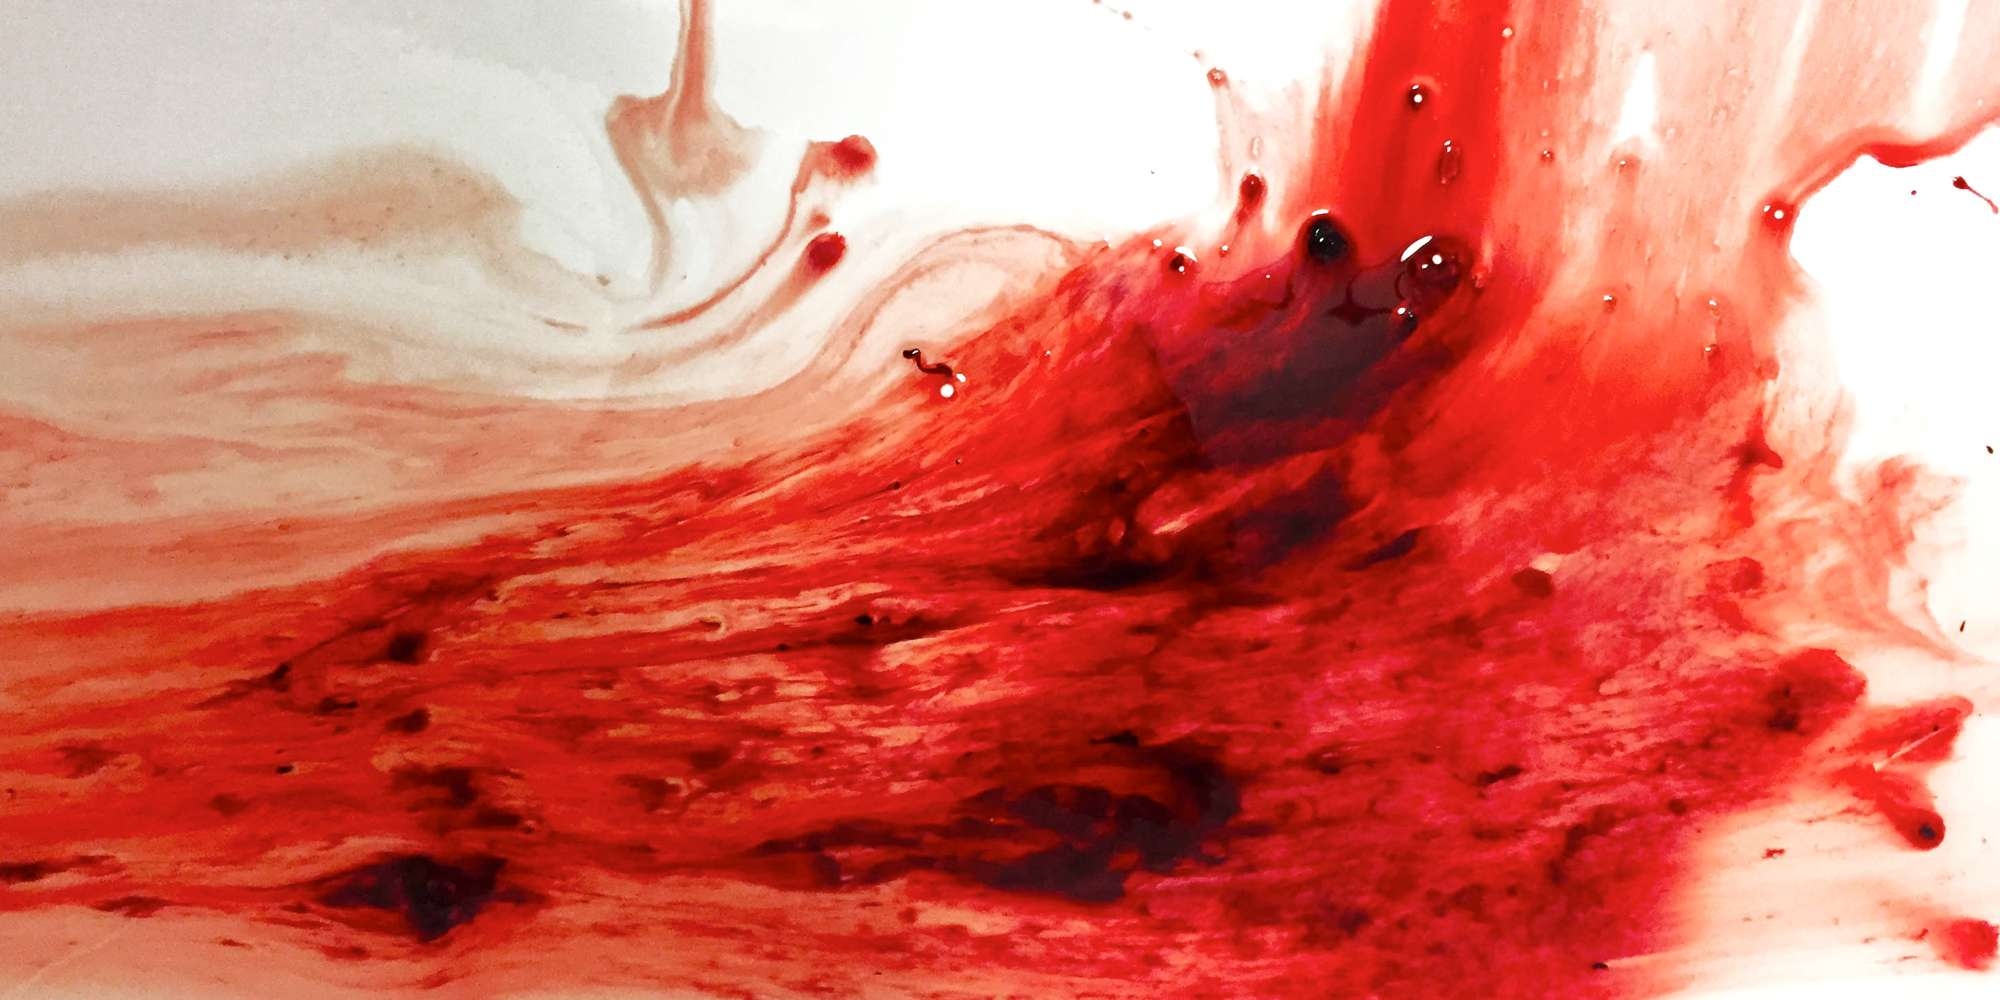 What menstrual blood is really made of ? Its not regular